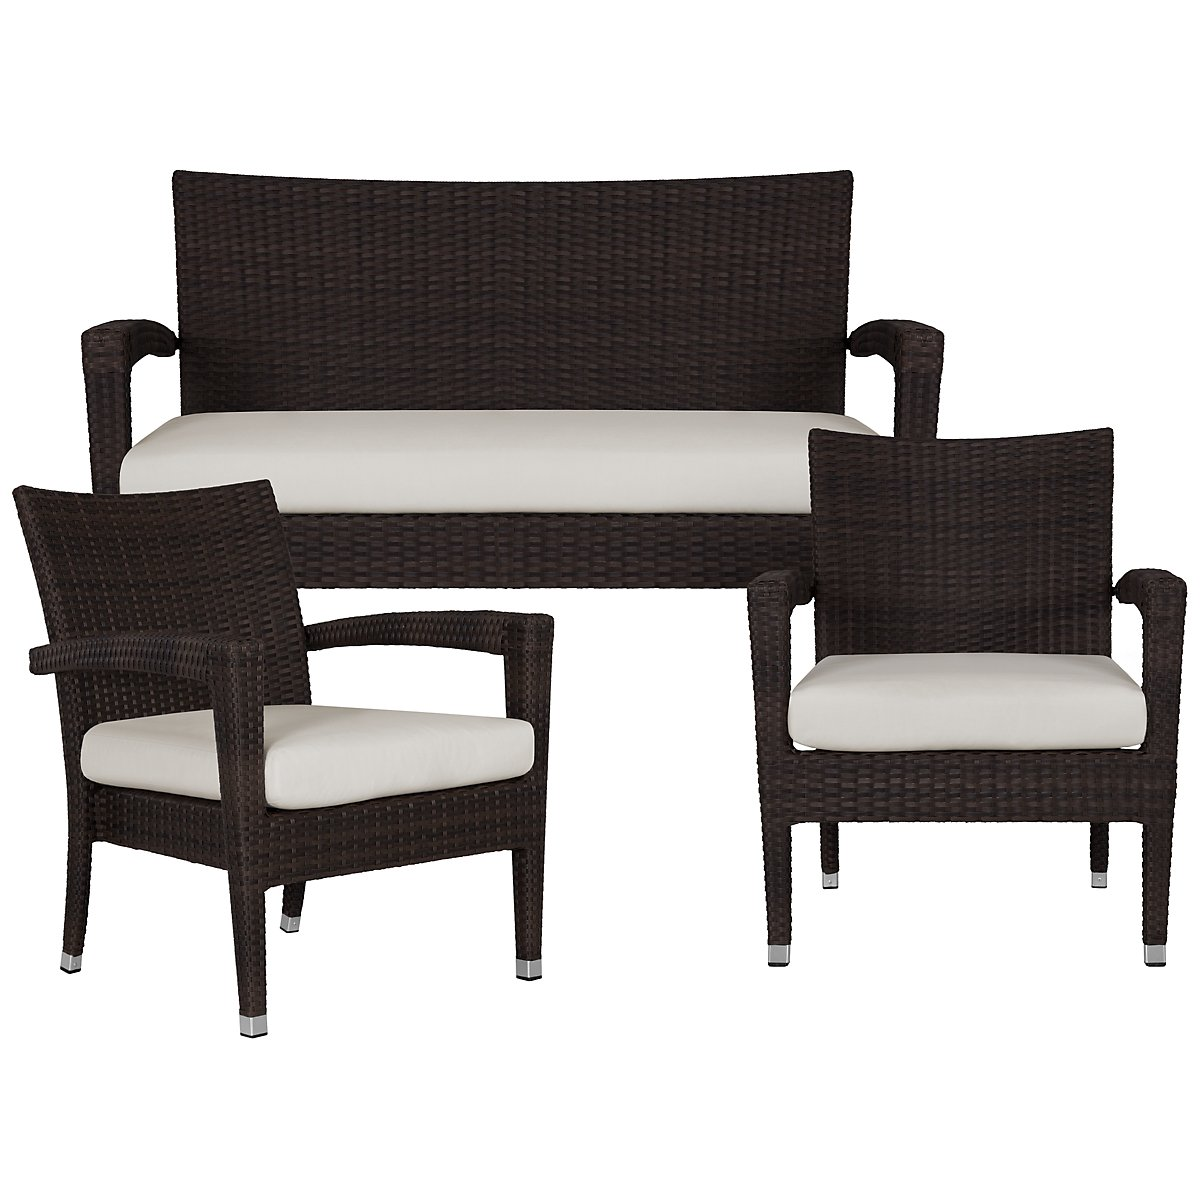 Zen White Outdoor Living Room Set